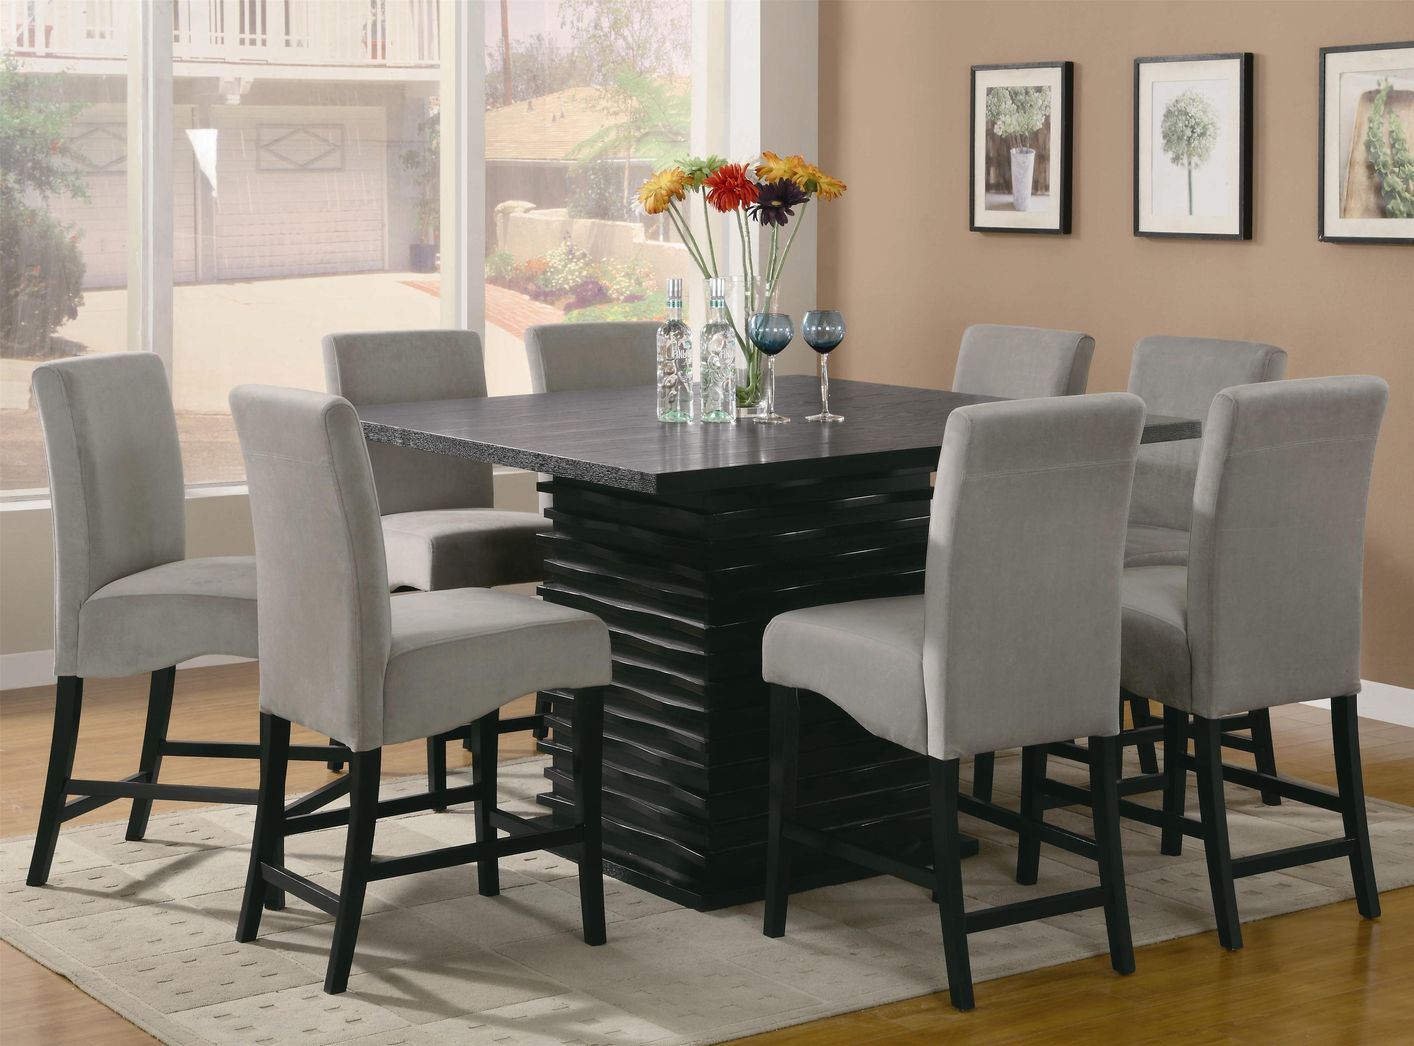 black square pub table and chairs vinyl chair cleaner coaster stanton 102068 102069gry wood set